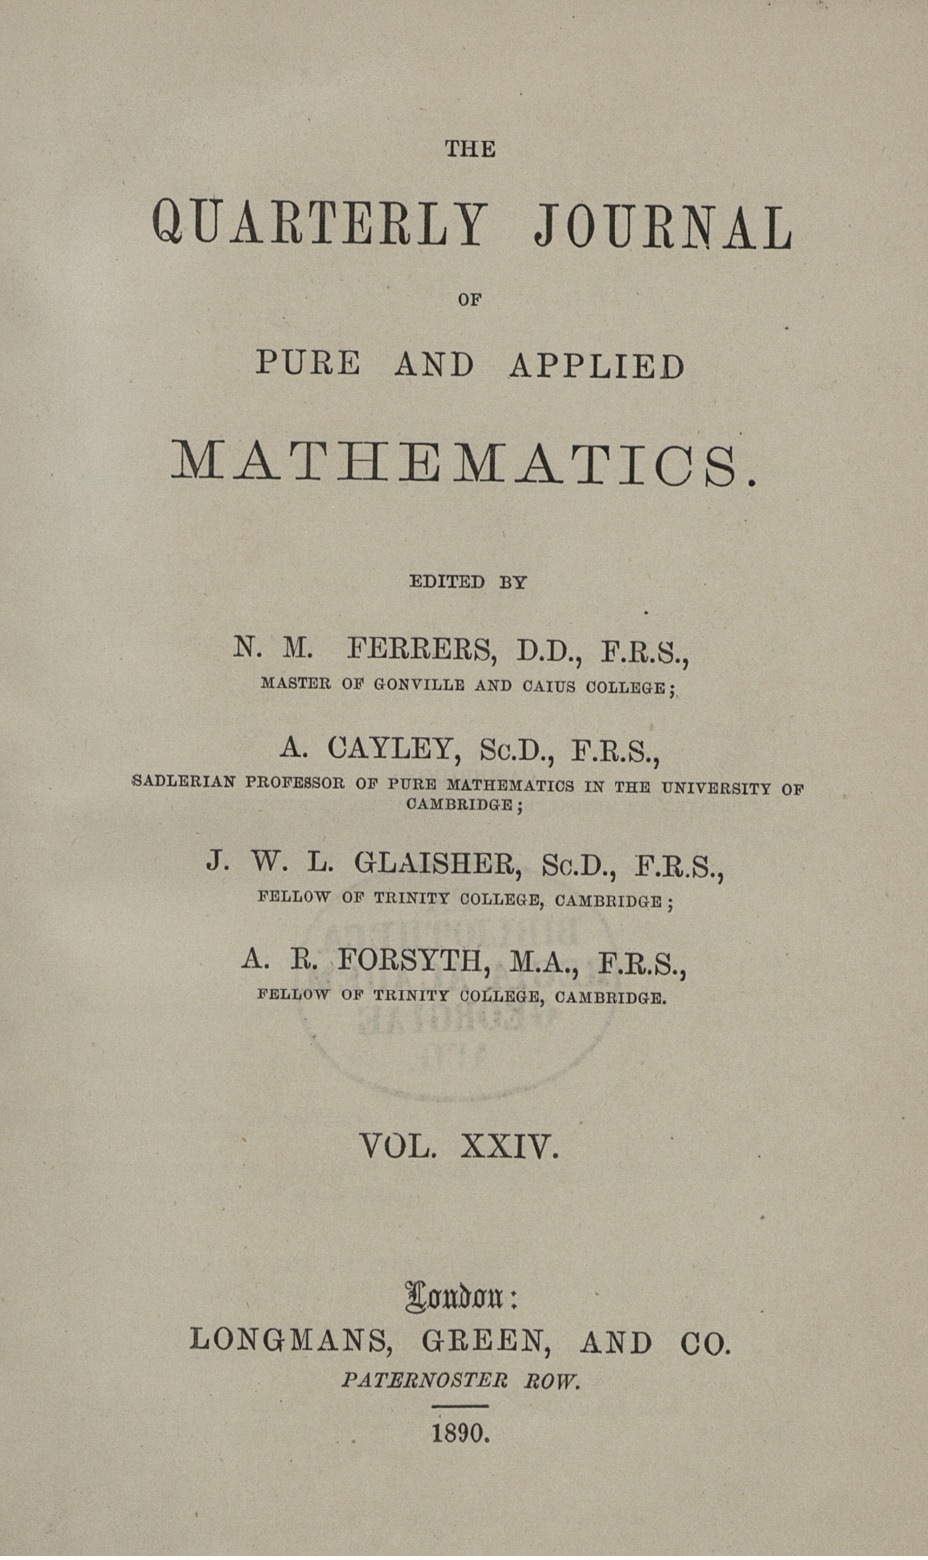 The quarterly journal of pure and applied mathematics | GDZ